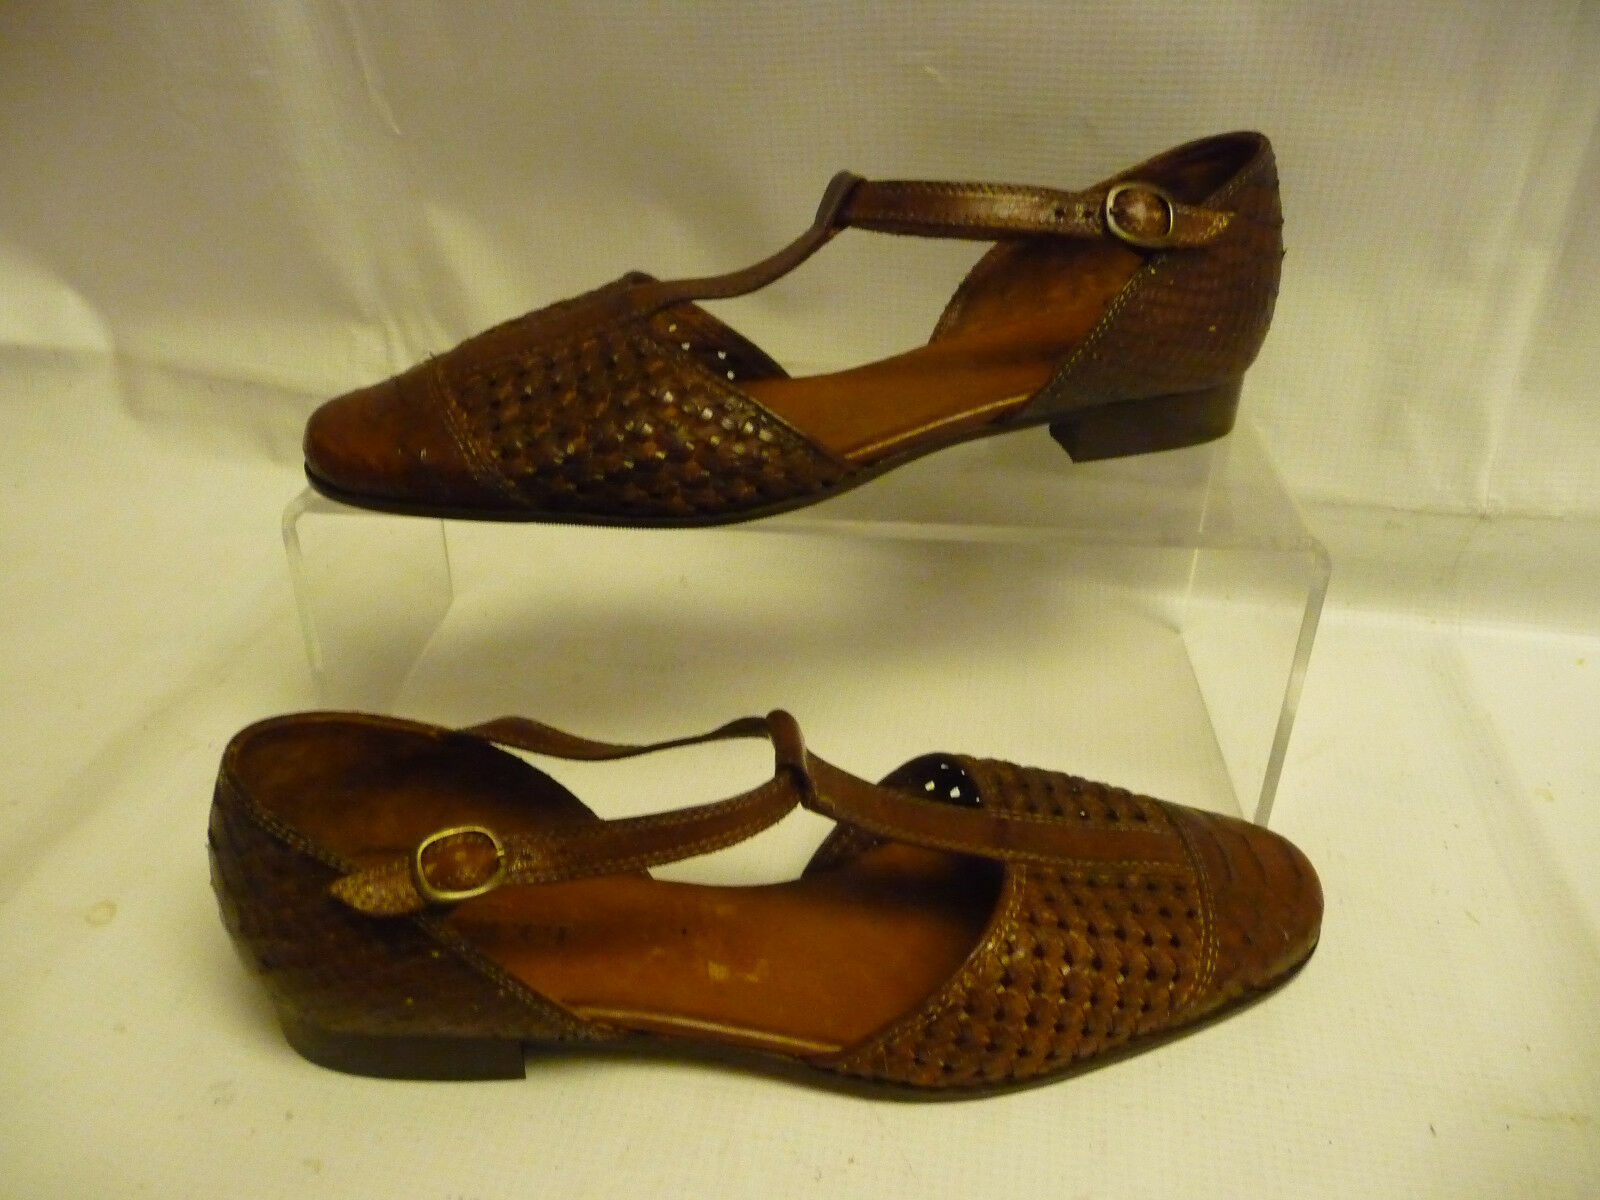 c93879c78 SESTO MEUCCI Womens Size 9N Low Heel Flats Brown Woven Buckle Leather